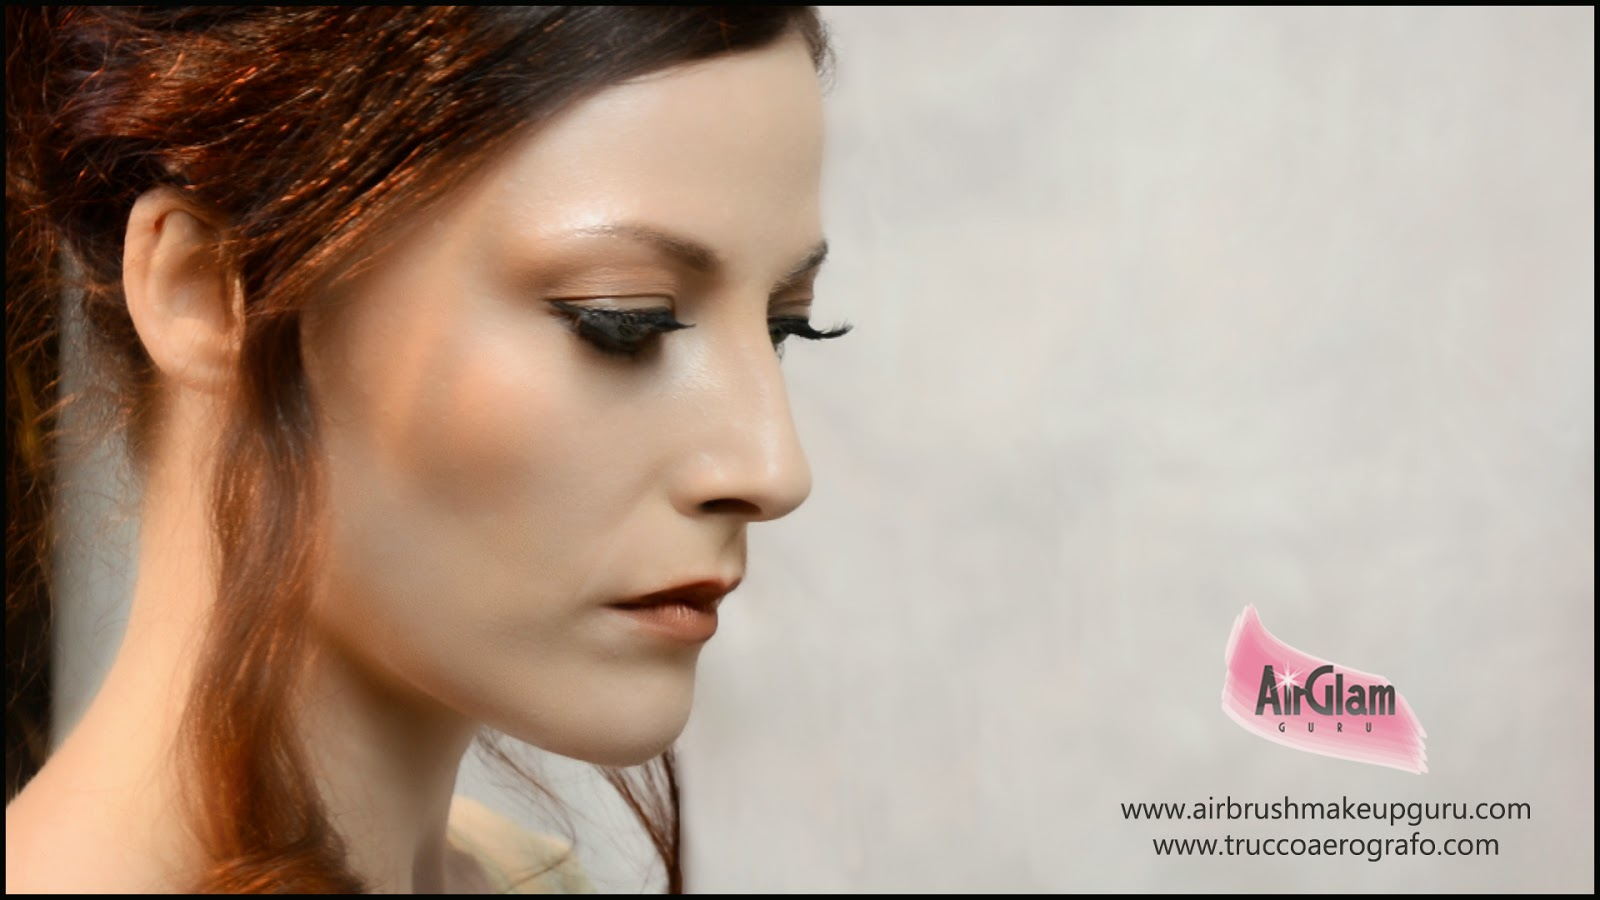 The Airbrush Makeup Guru: Mistair: Full Airbrush Makeup ...